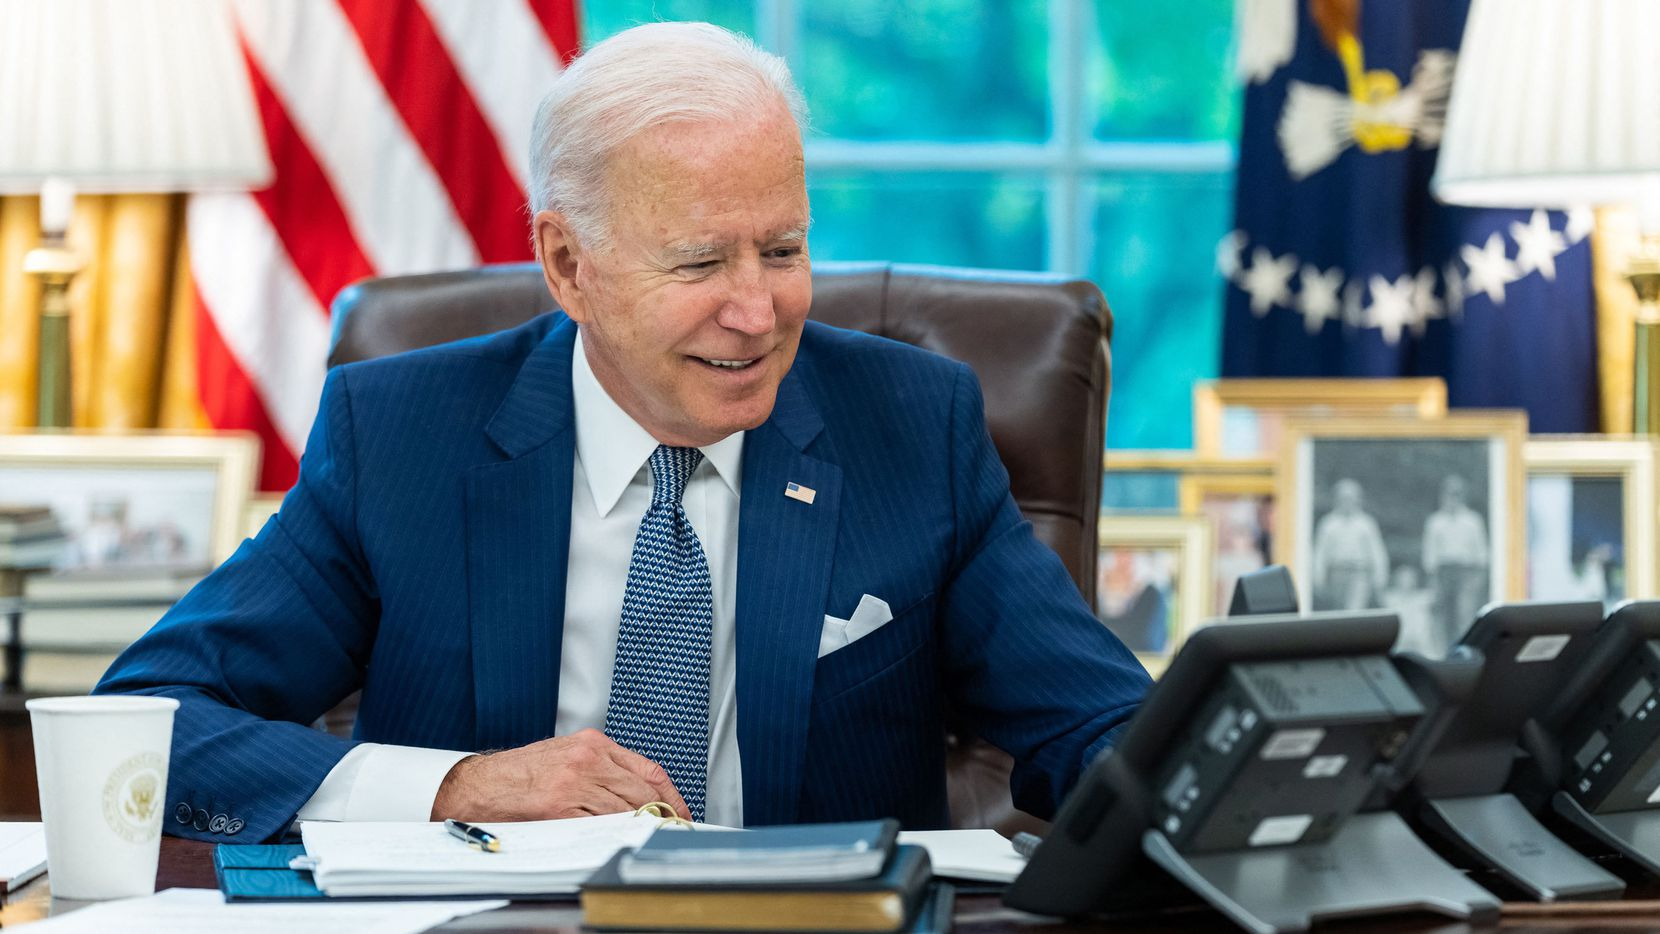 In this image released by the White House, President Joe Biden talks on the phone with French President Emmanuel Macron on Sept. 22, 2021, in the Oval Office, the presidents' first conversation since a row erupted over the sale of submarines to Australia.